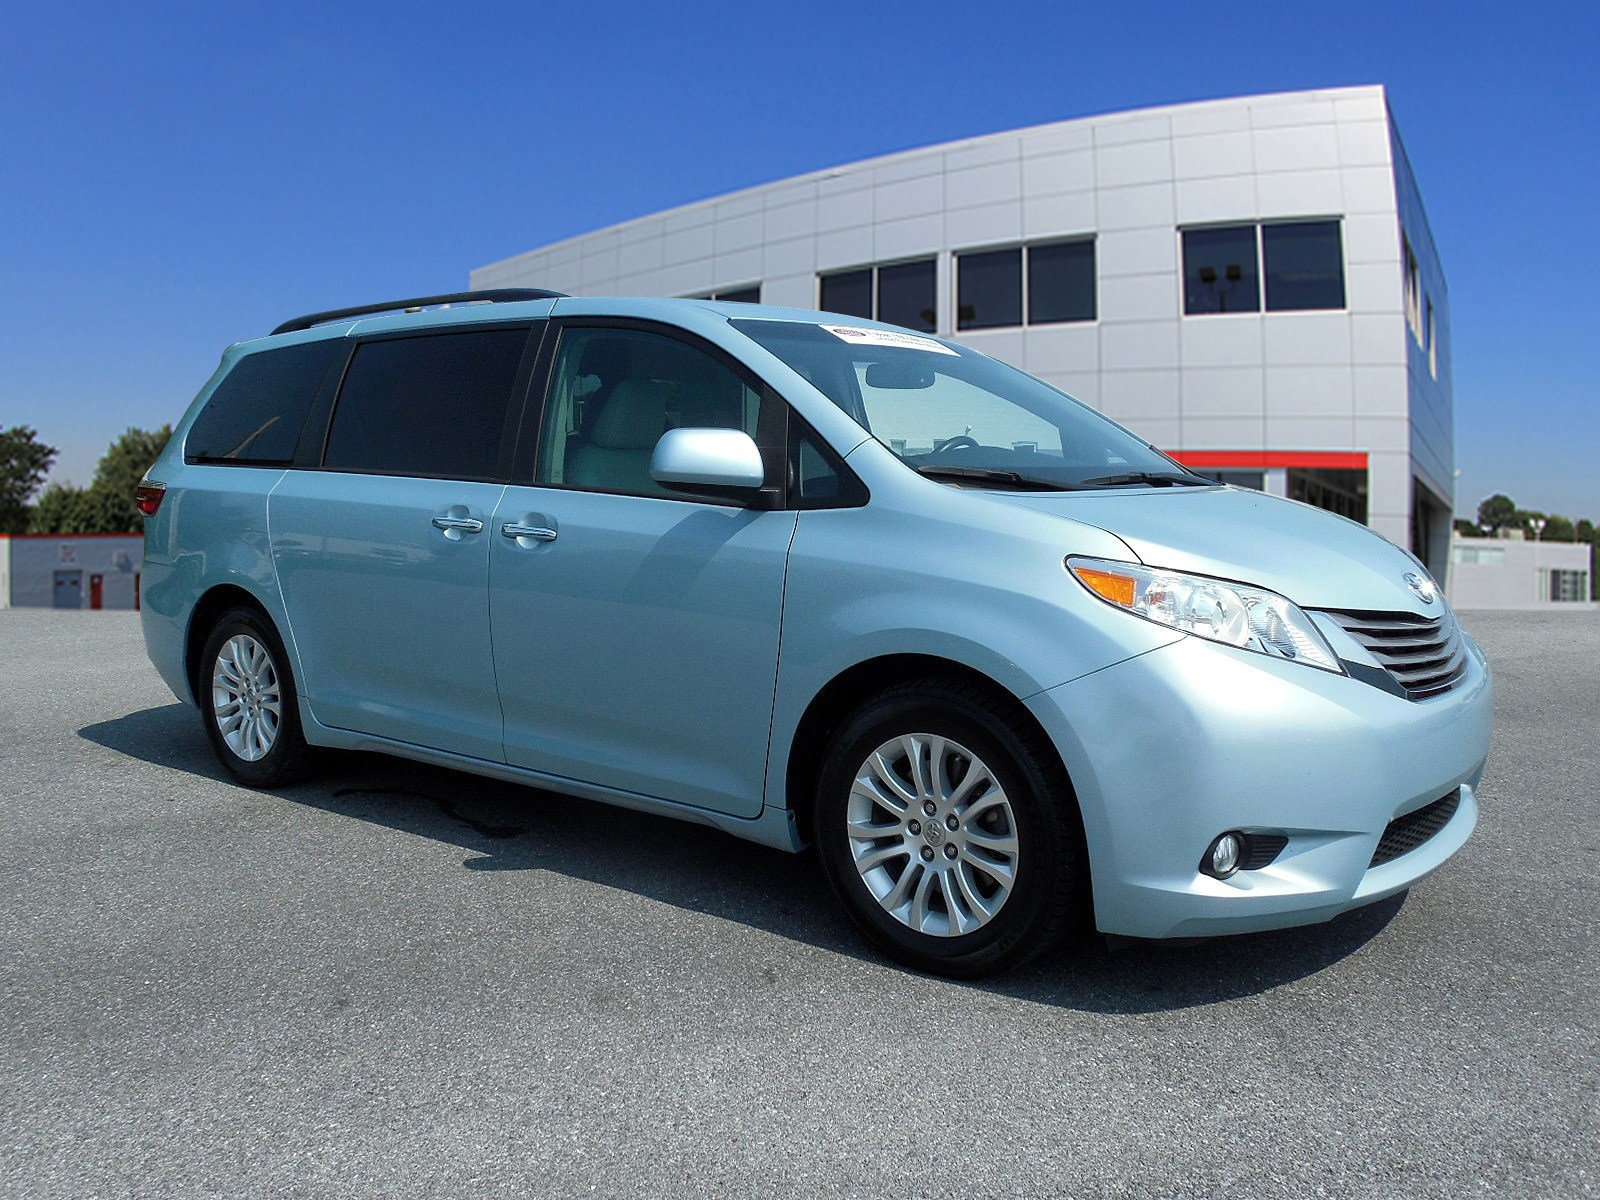 Toyota Sienna Service Manual: Television camera